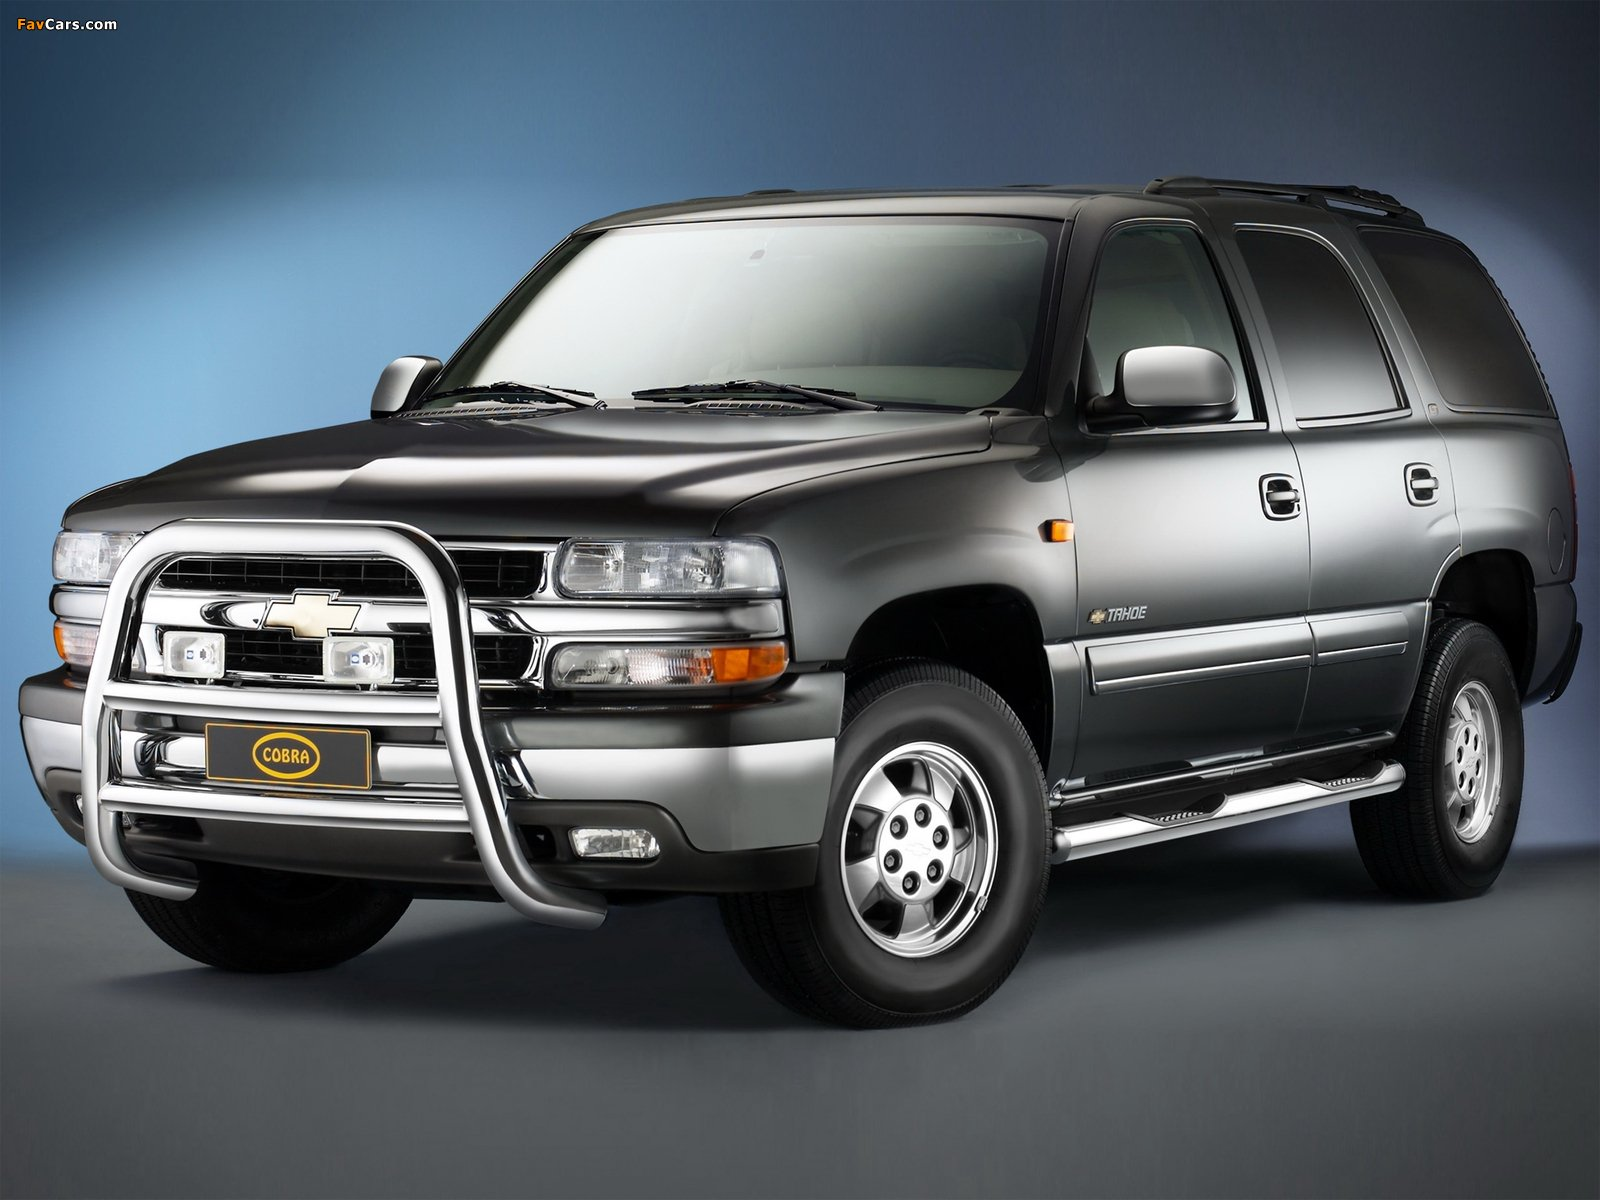 chevrolet tahoe (gmt840) 2000 pictures #3